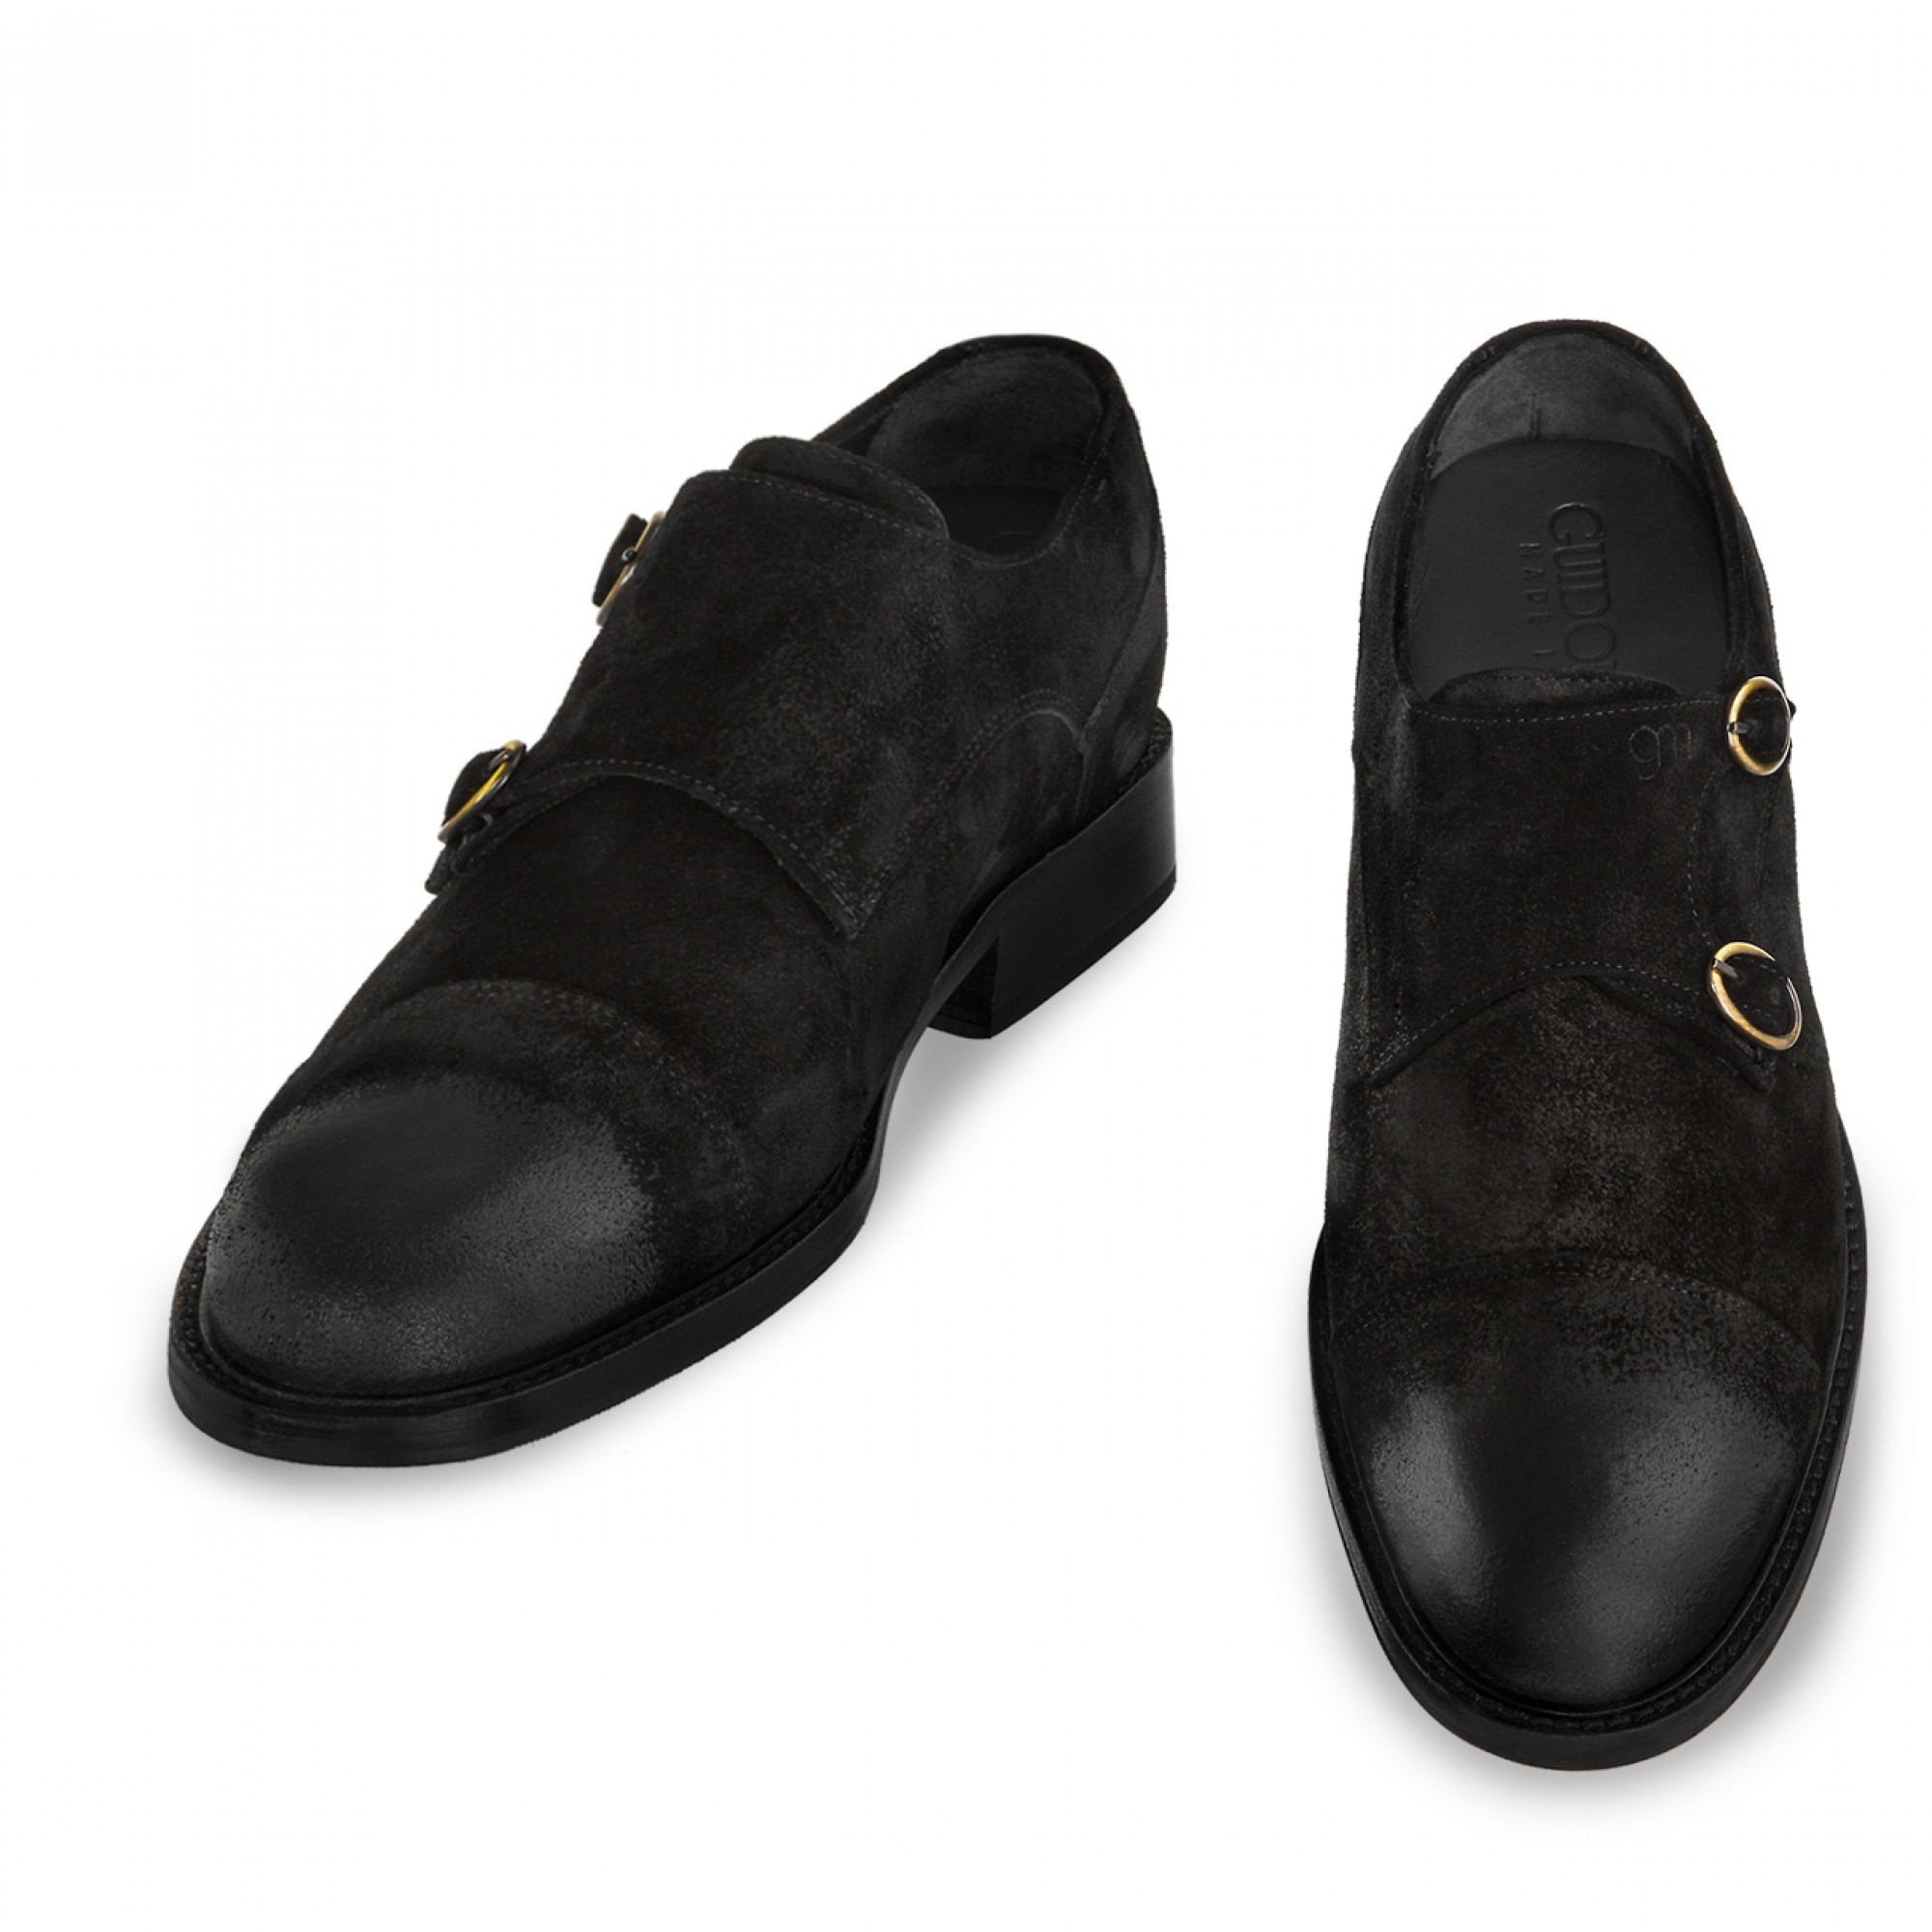 Elevator double buckle shoes